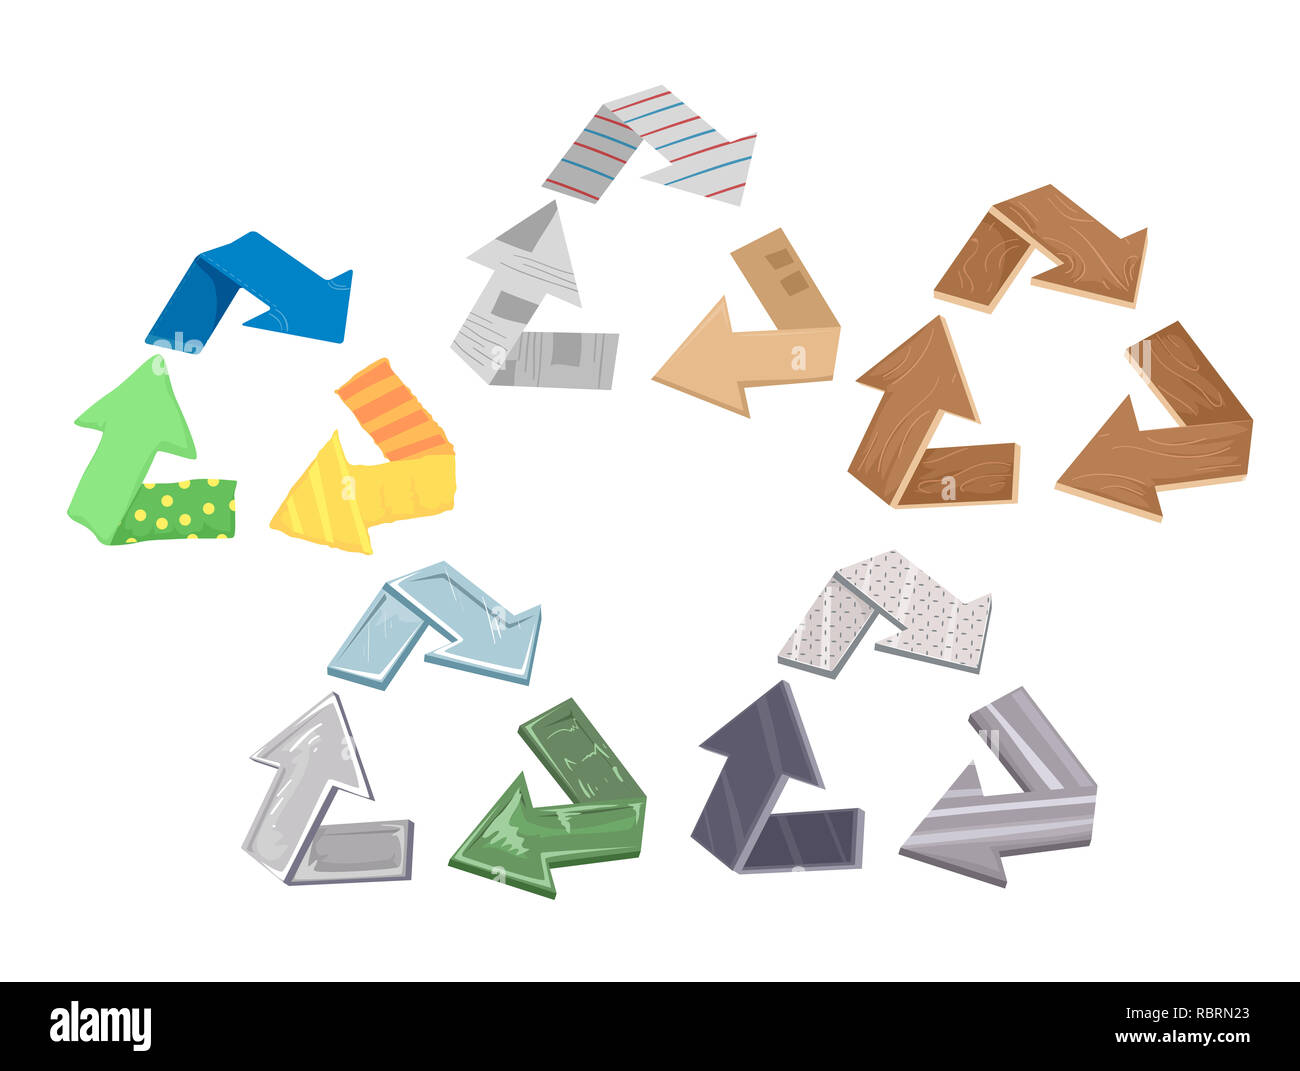 Illustration of Recycle Symbol Made from Different Materials from Paper, Cardboard, Fabric, Metal and Glass - Stock Image